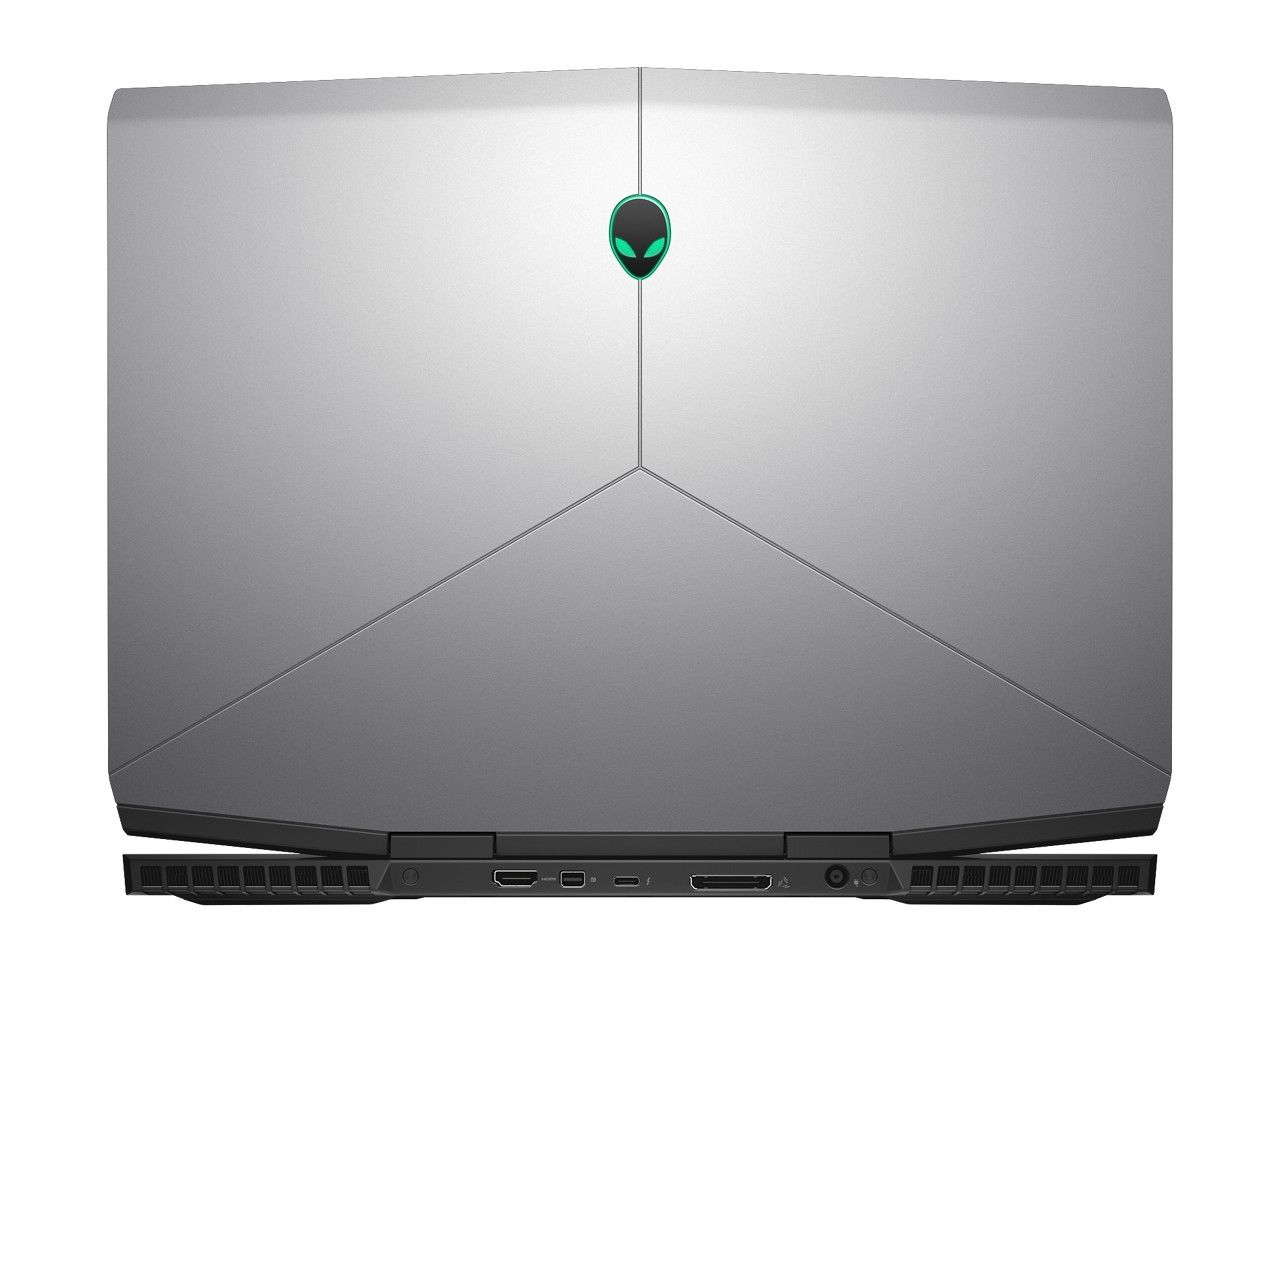 Alienware m15-11.jpeg